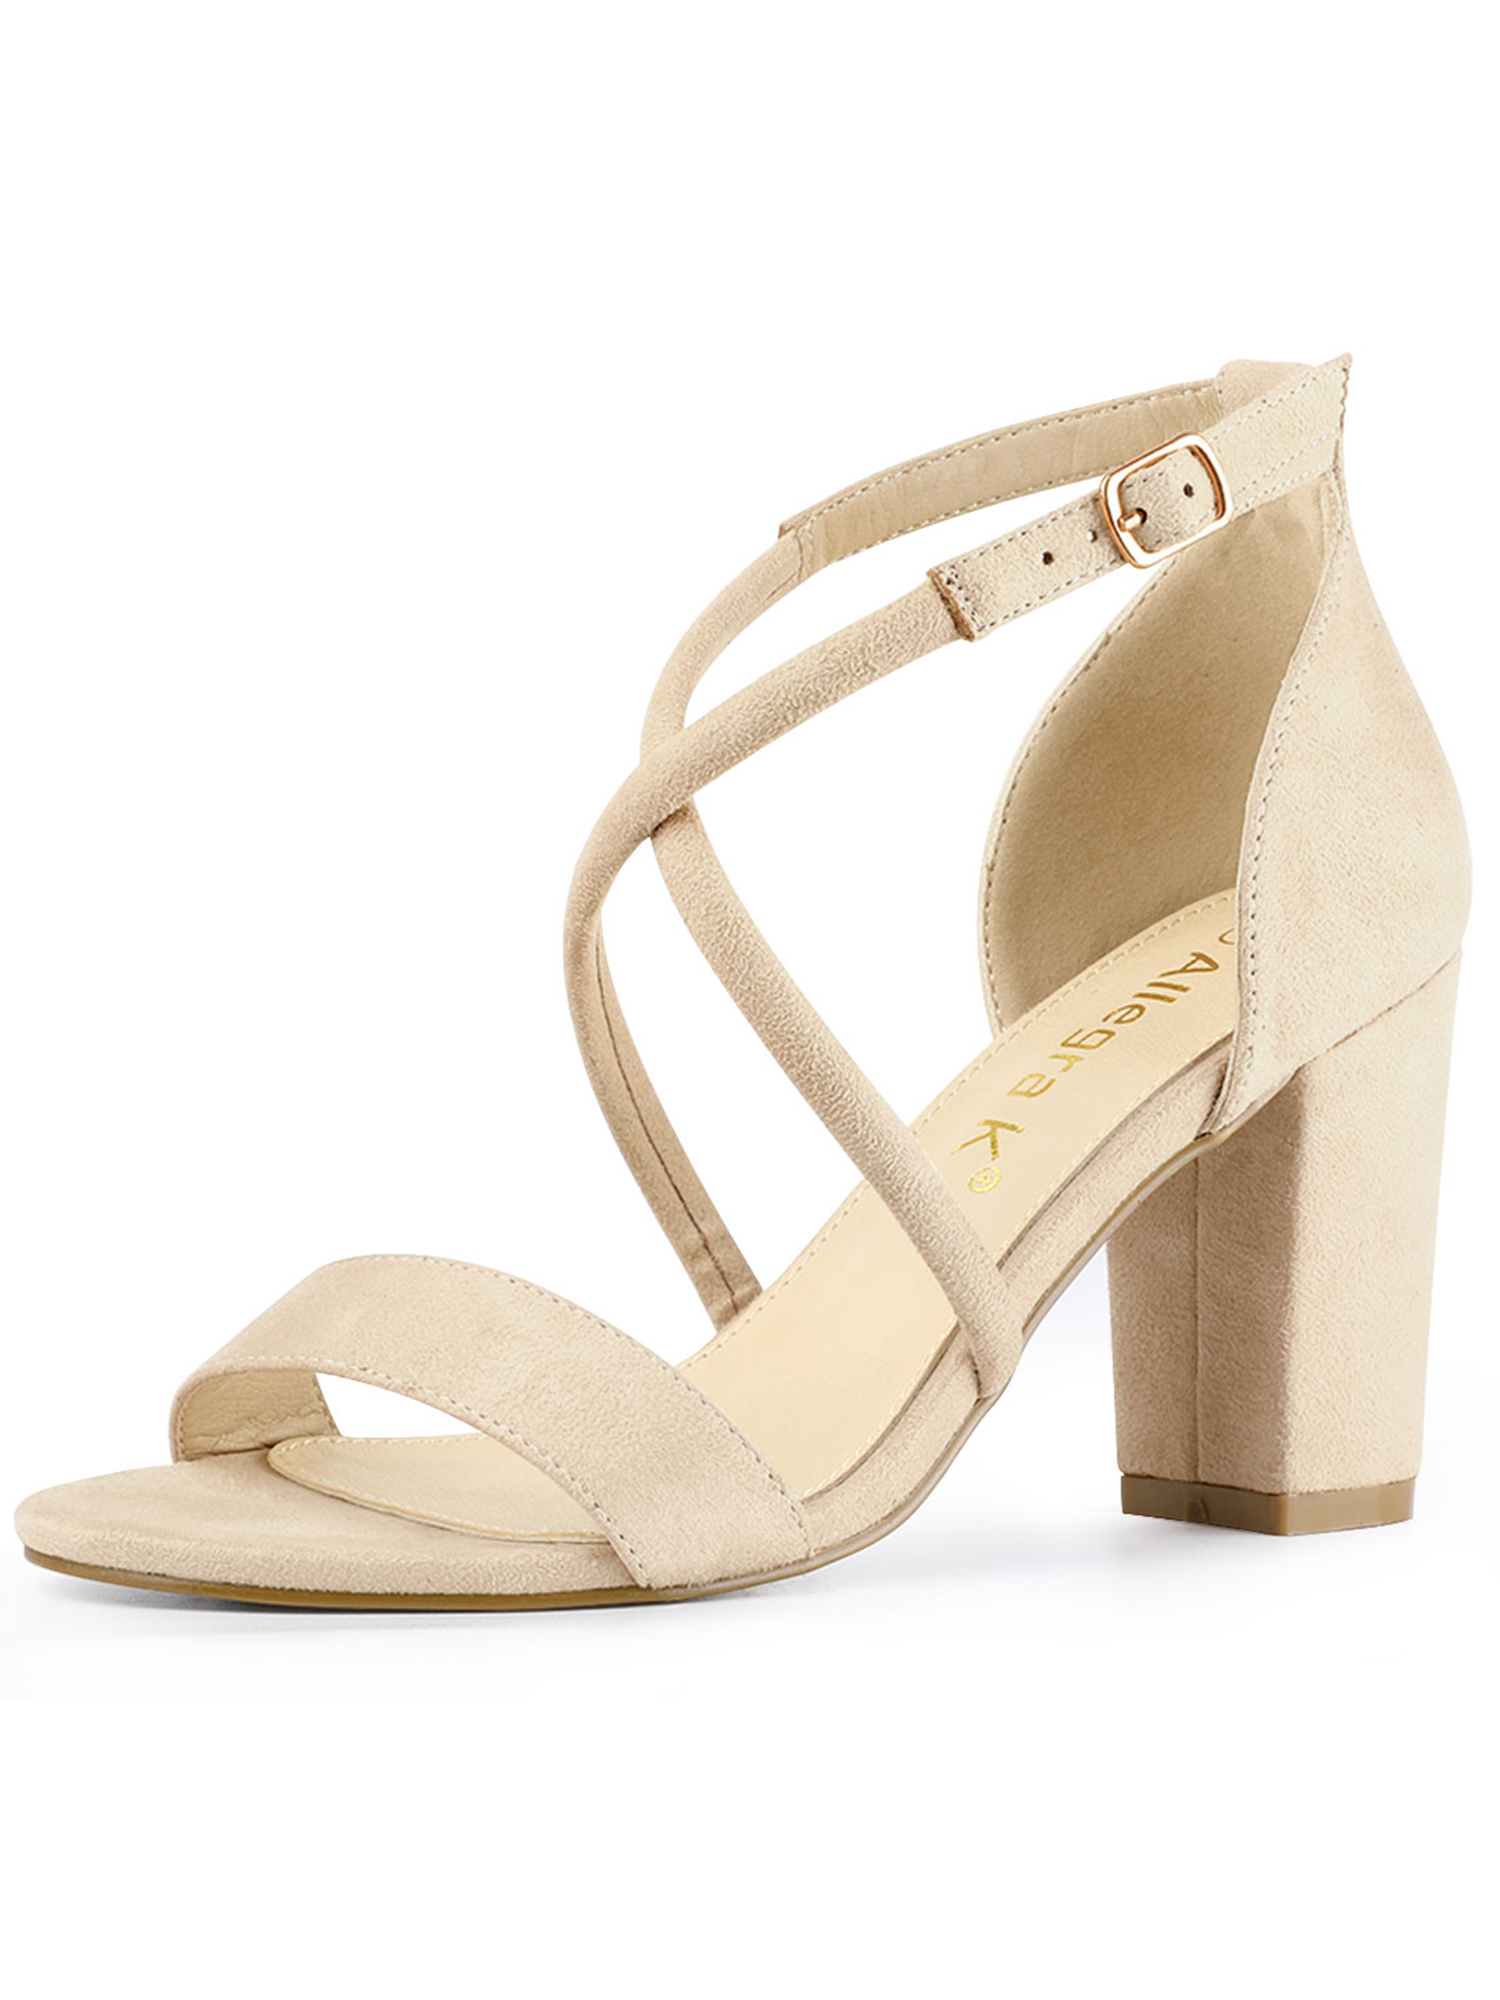 Women's Crisscross Ankle Strap Block Heel Beige Sandals - 10 M US